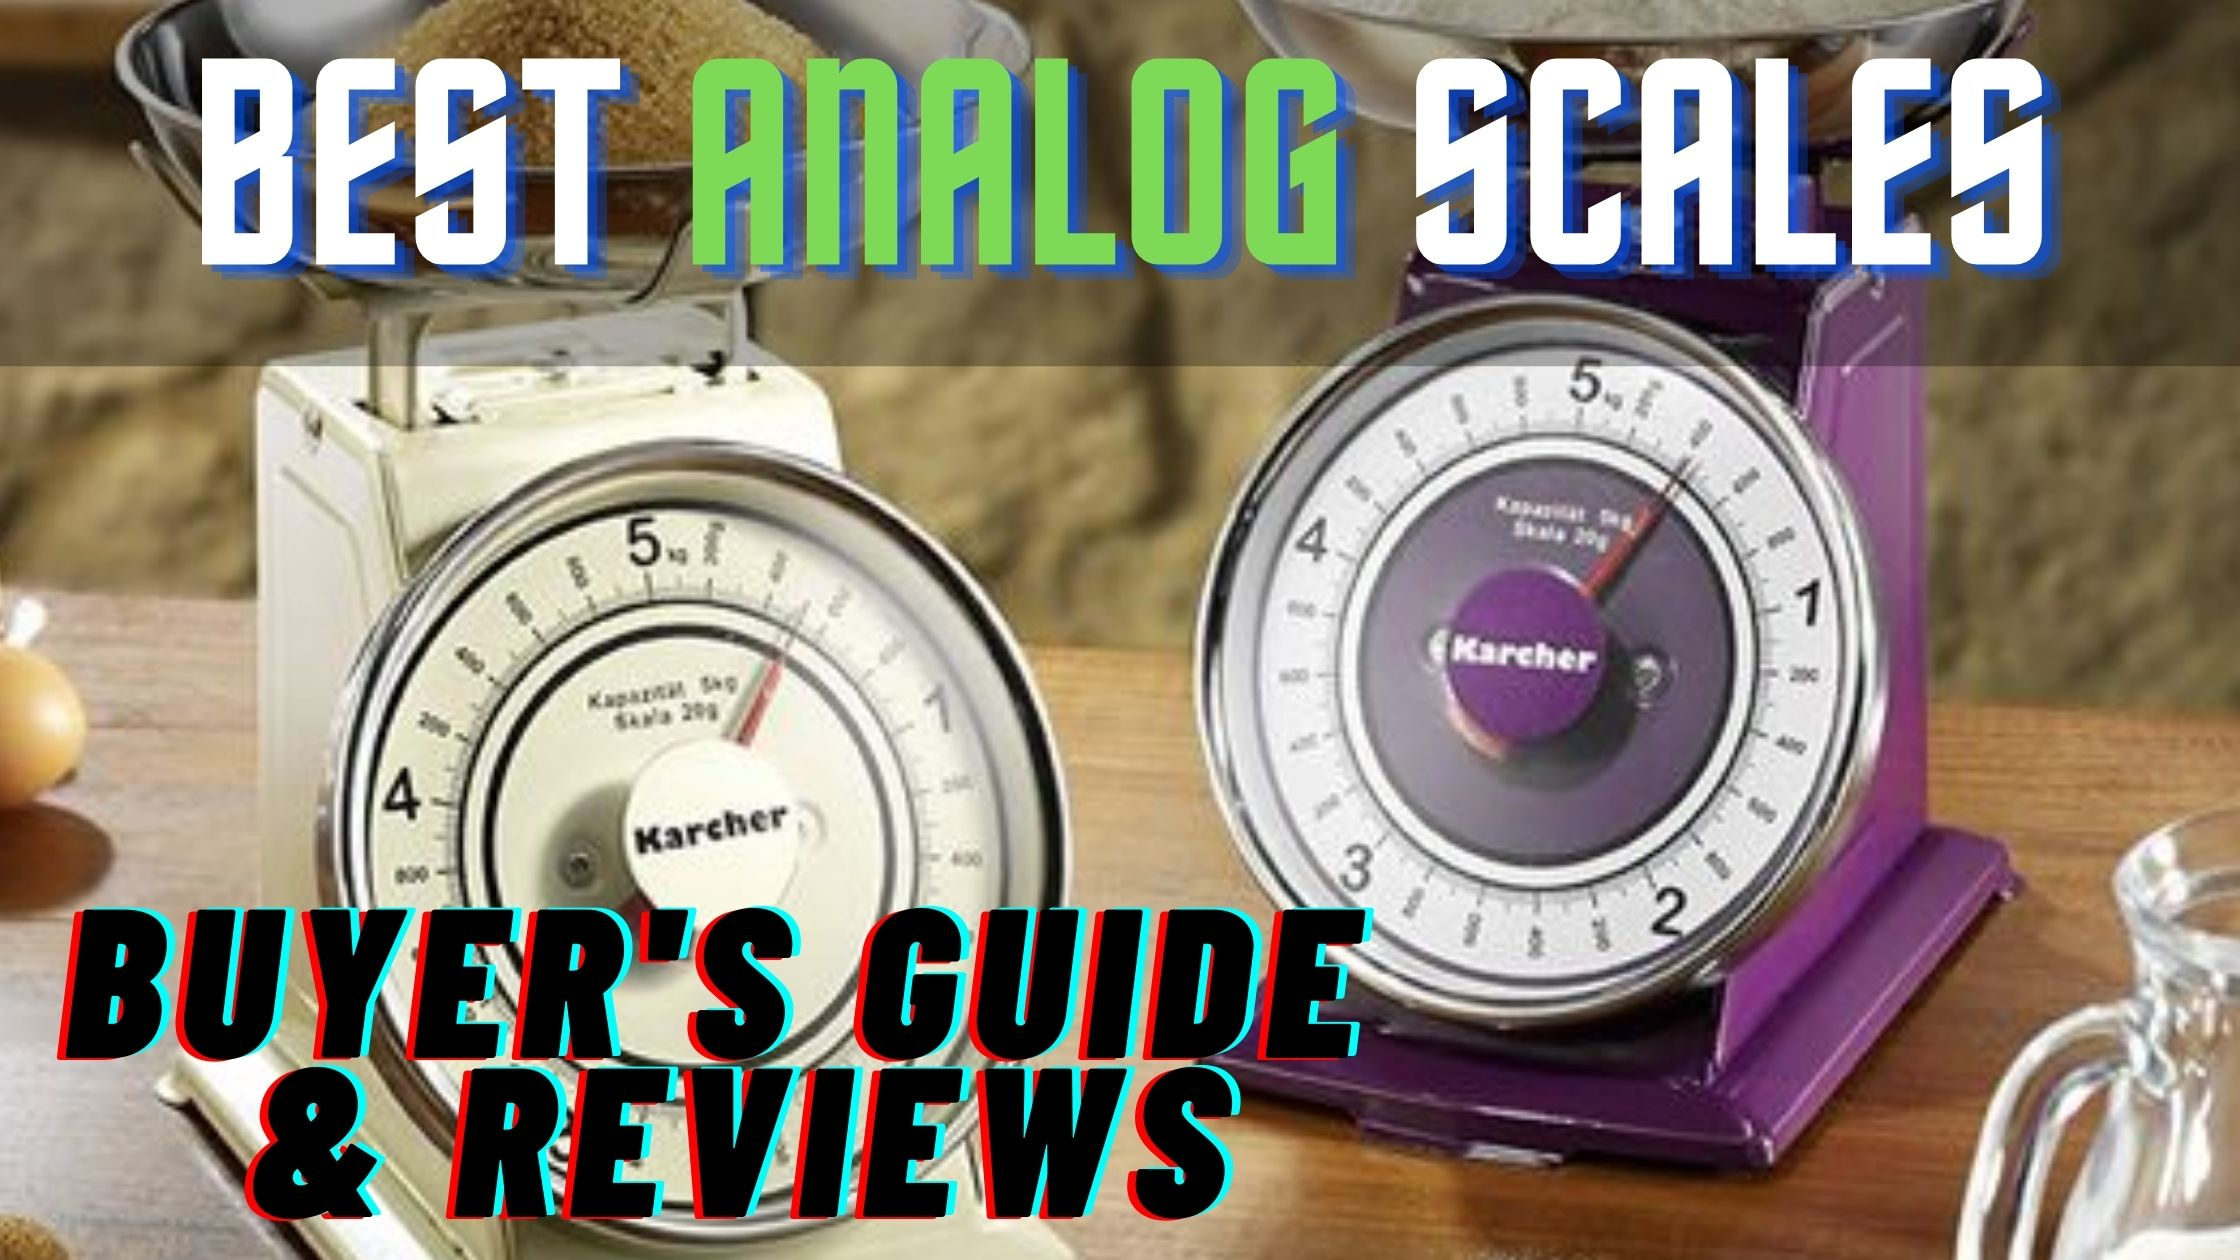 best analog food scales